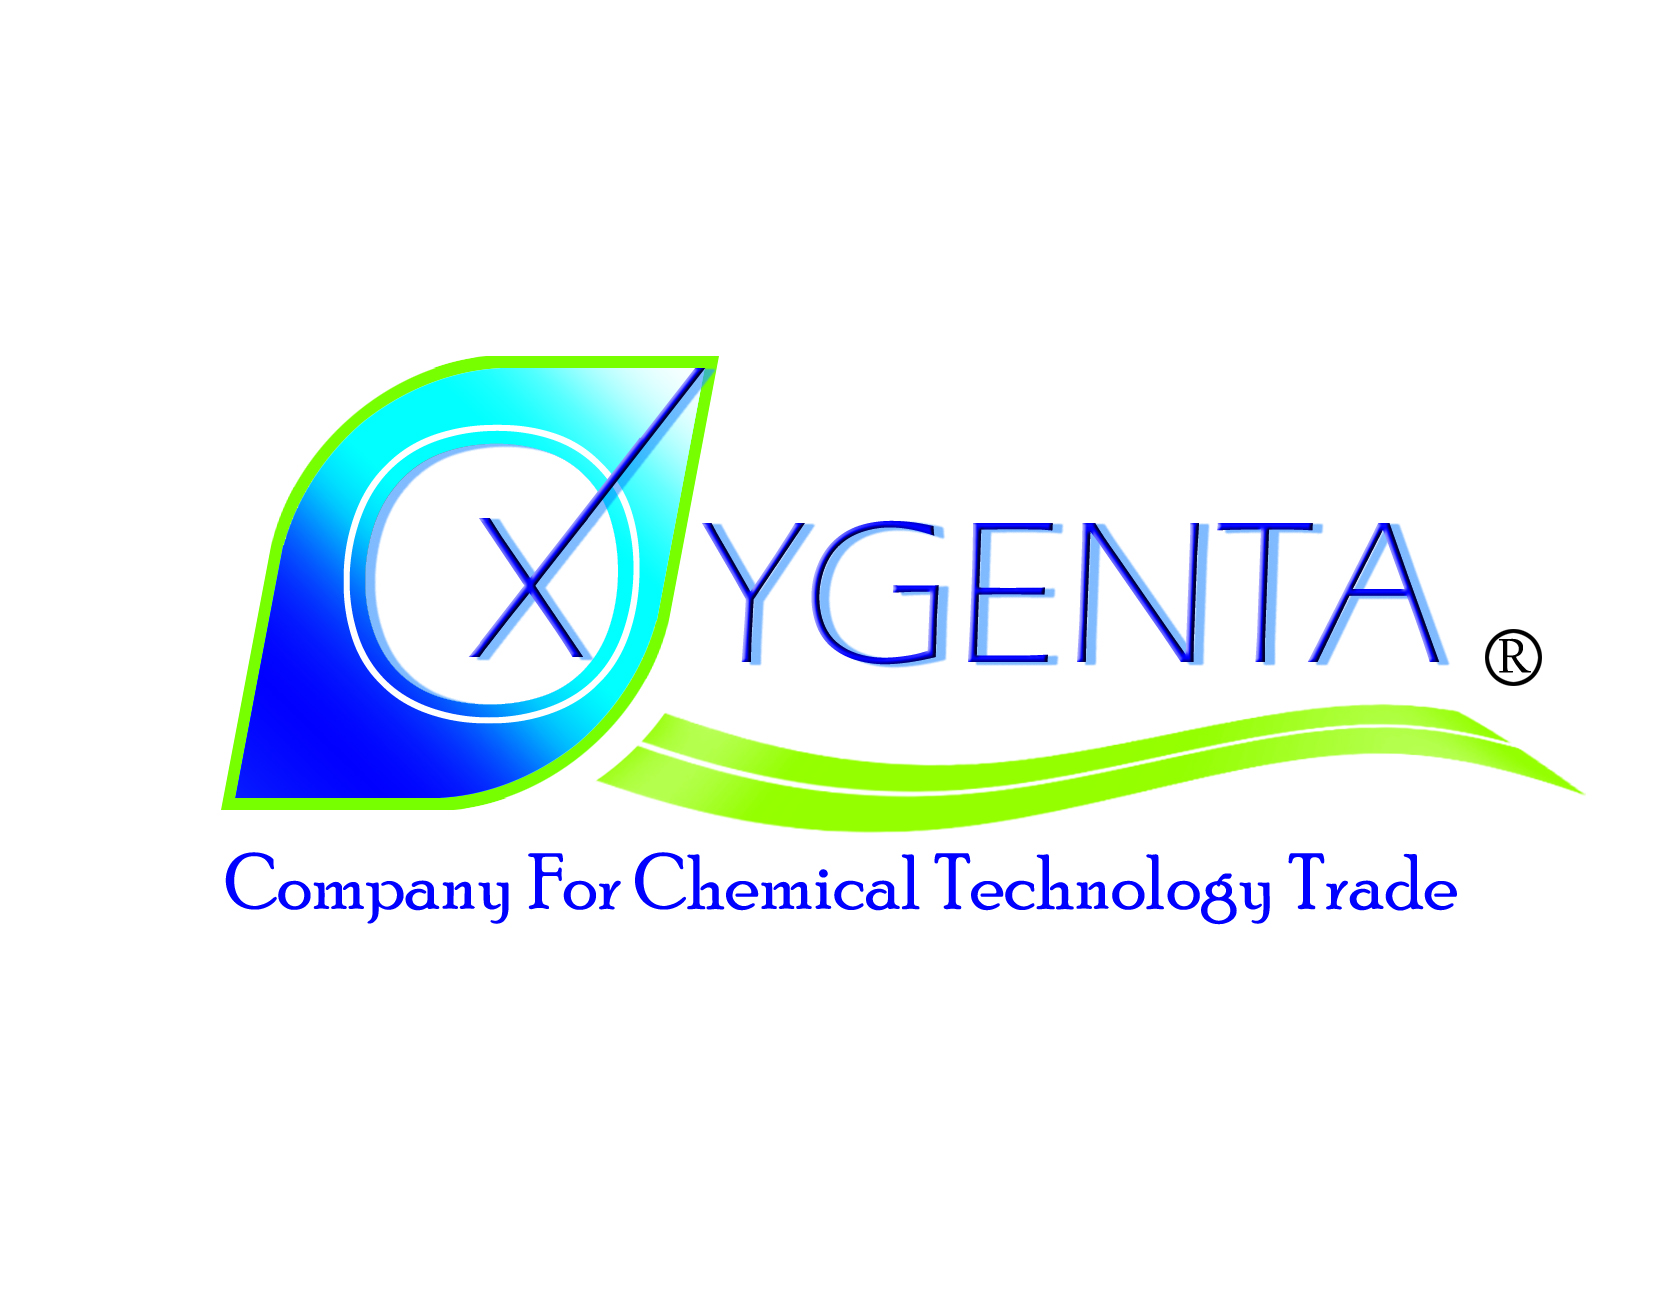 OXYGENTA FOR CHEMICAL TECHNOLOGY